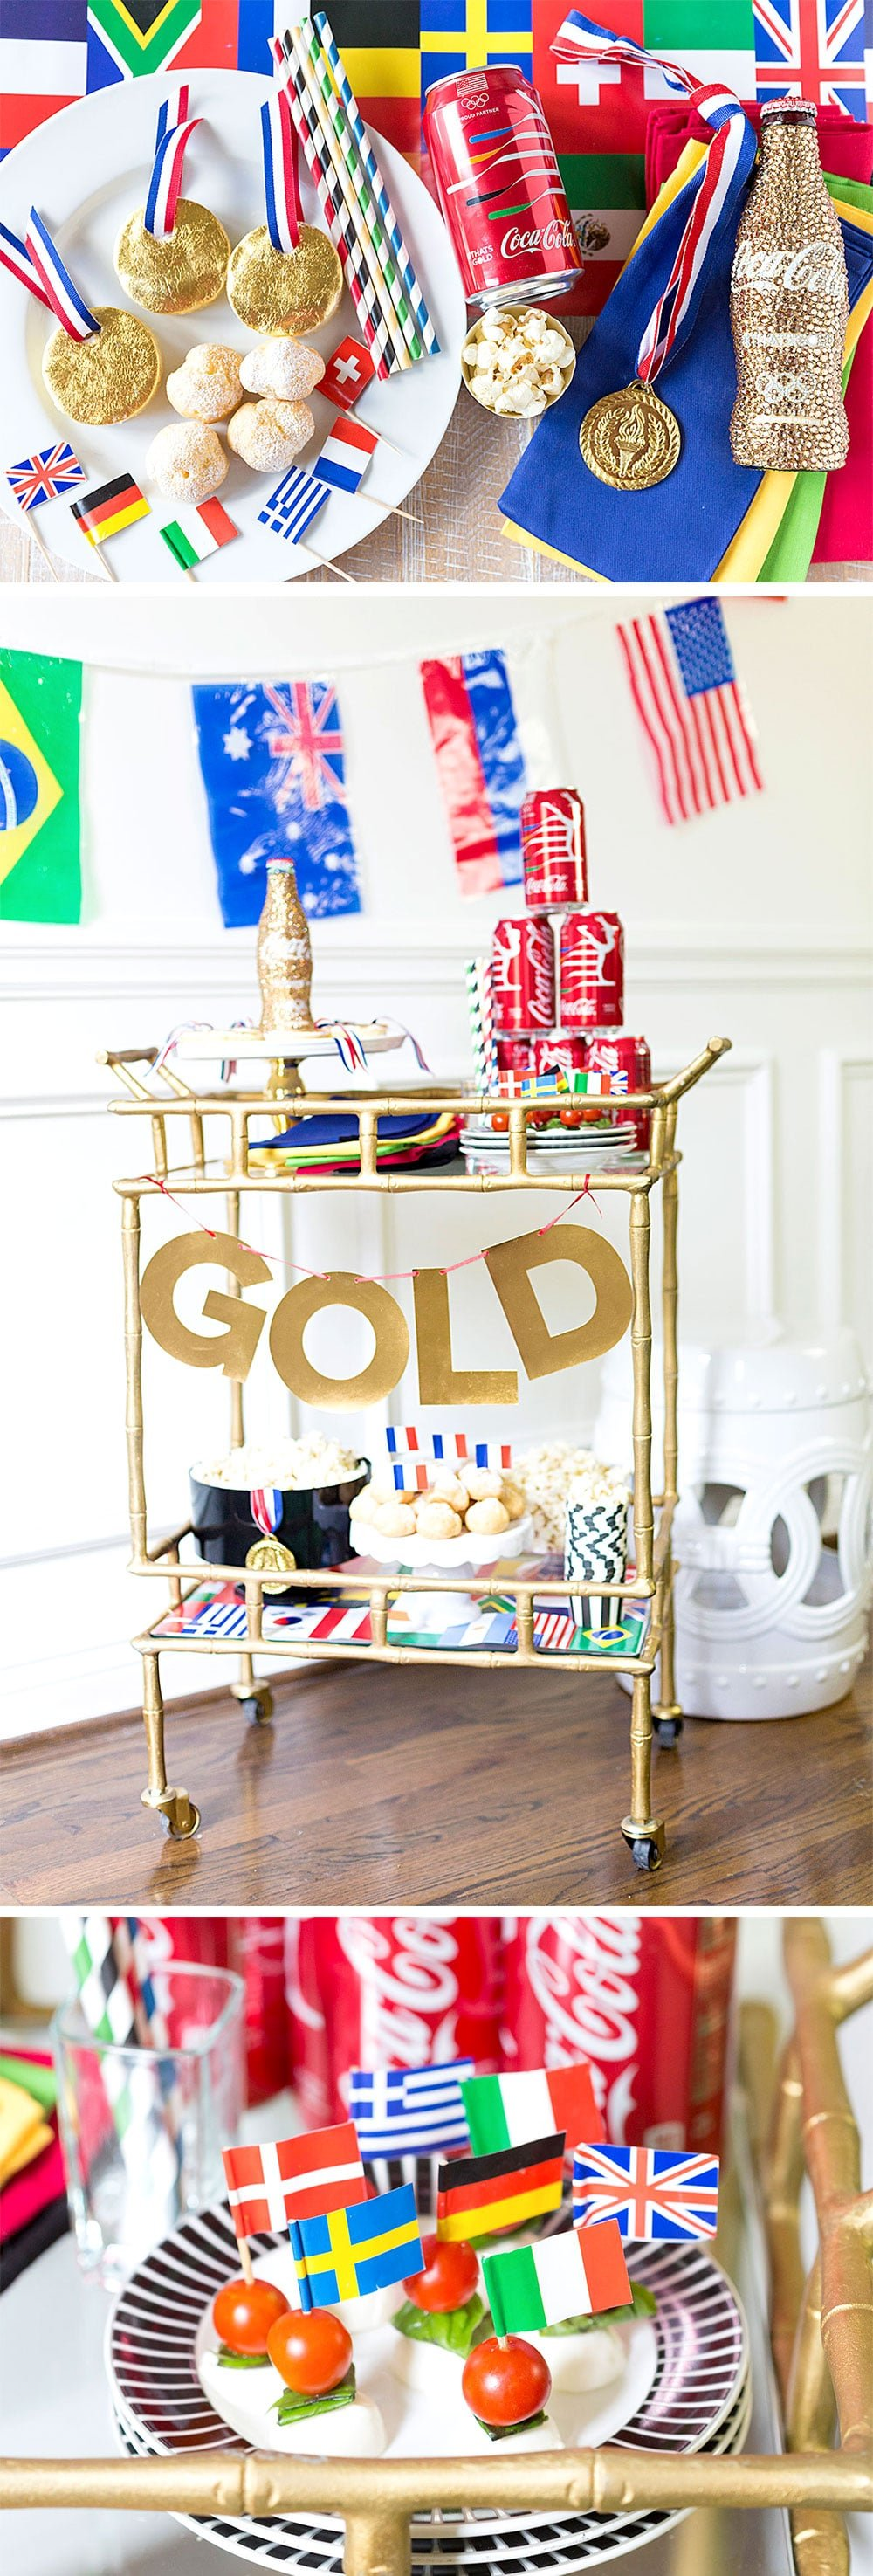 Olympic Games Viewing Party: Ideas for Food, Drinks, and Decorations!